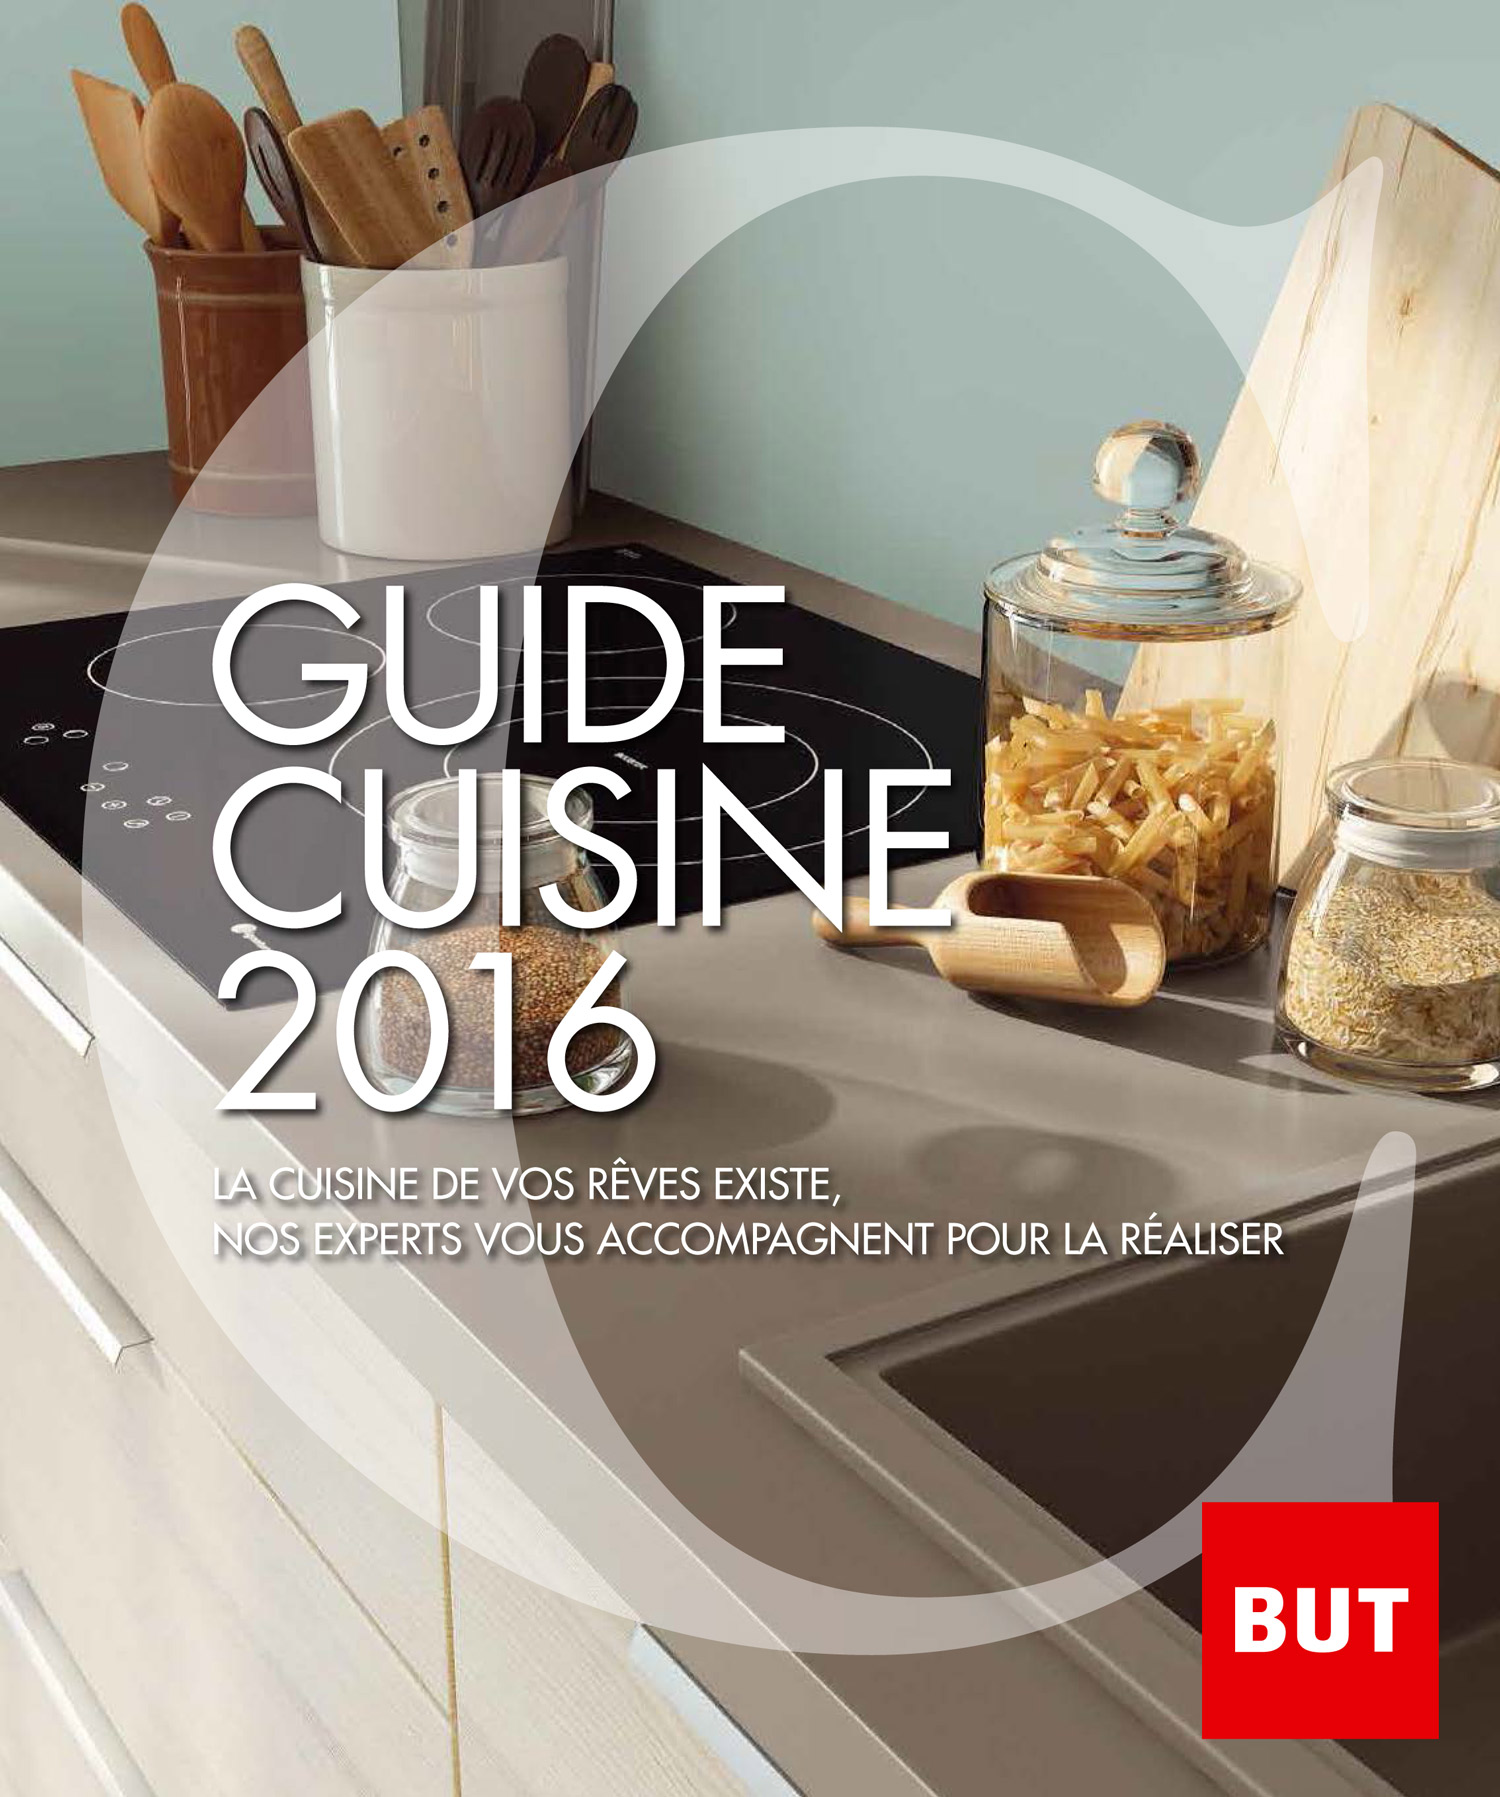 But les guides cuisine et literie 2016 con us par volcan for Cuisine design 2016